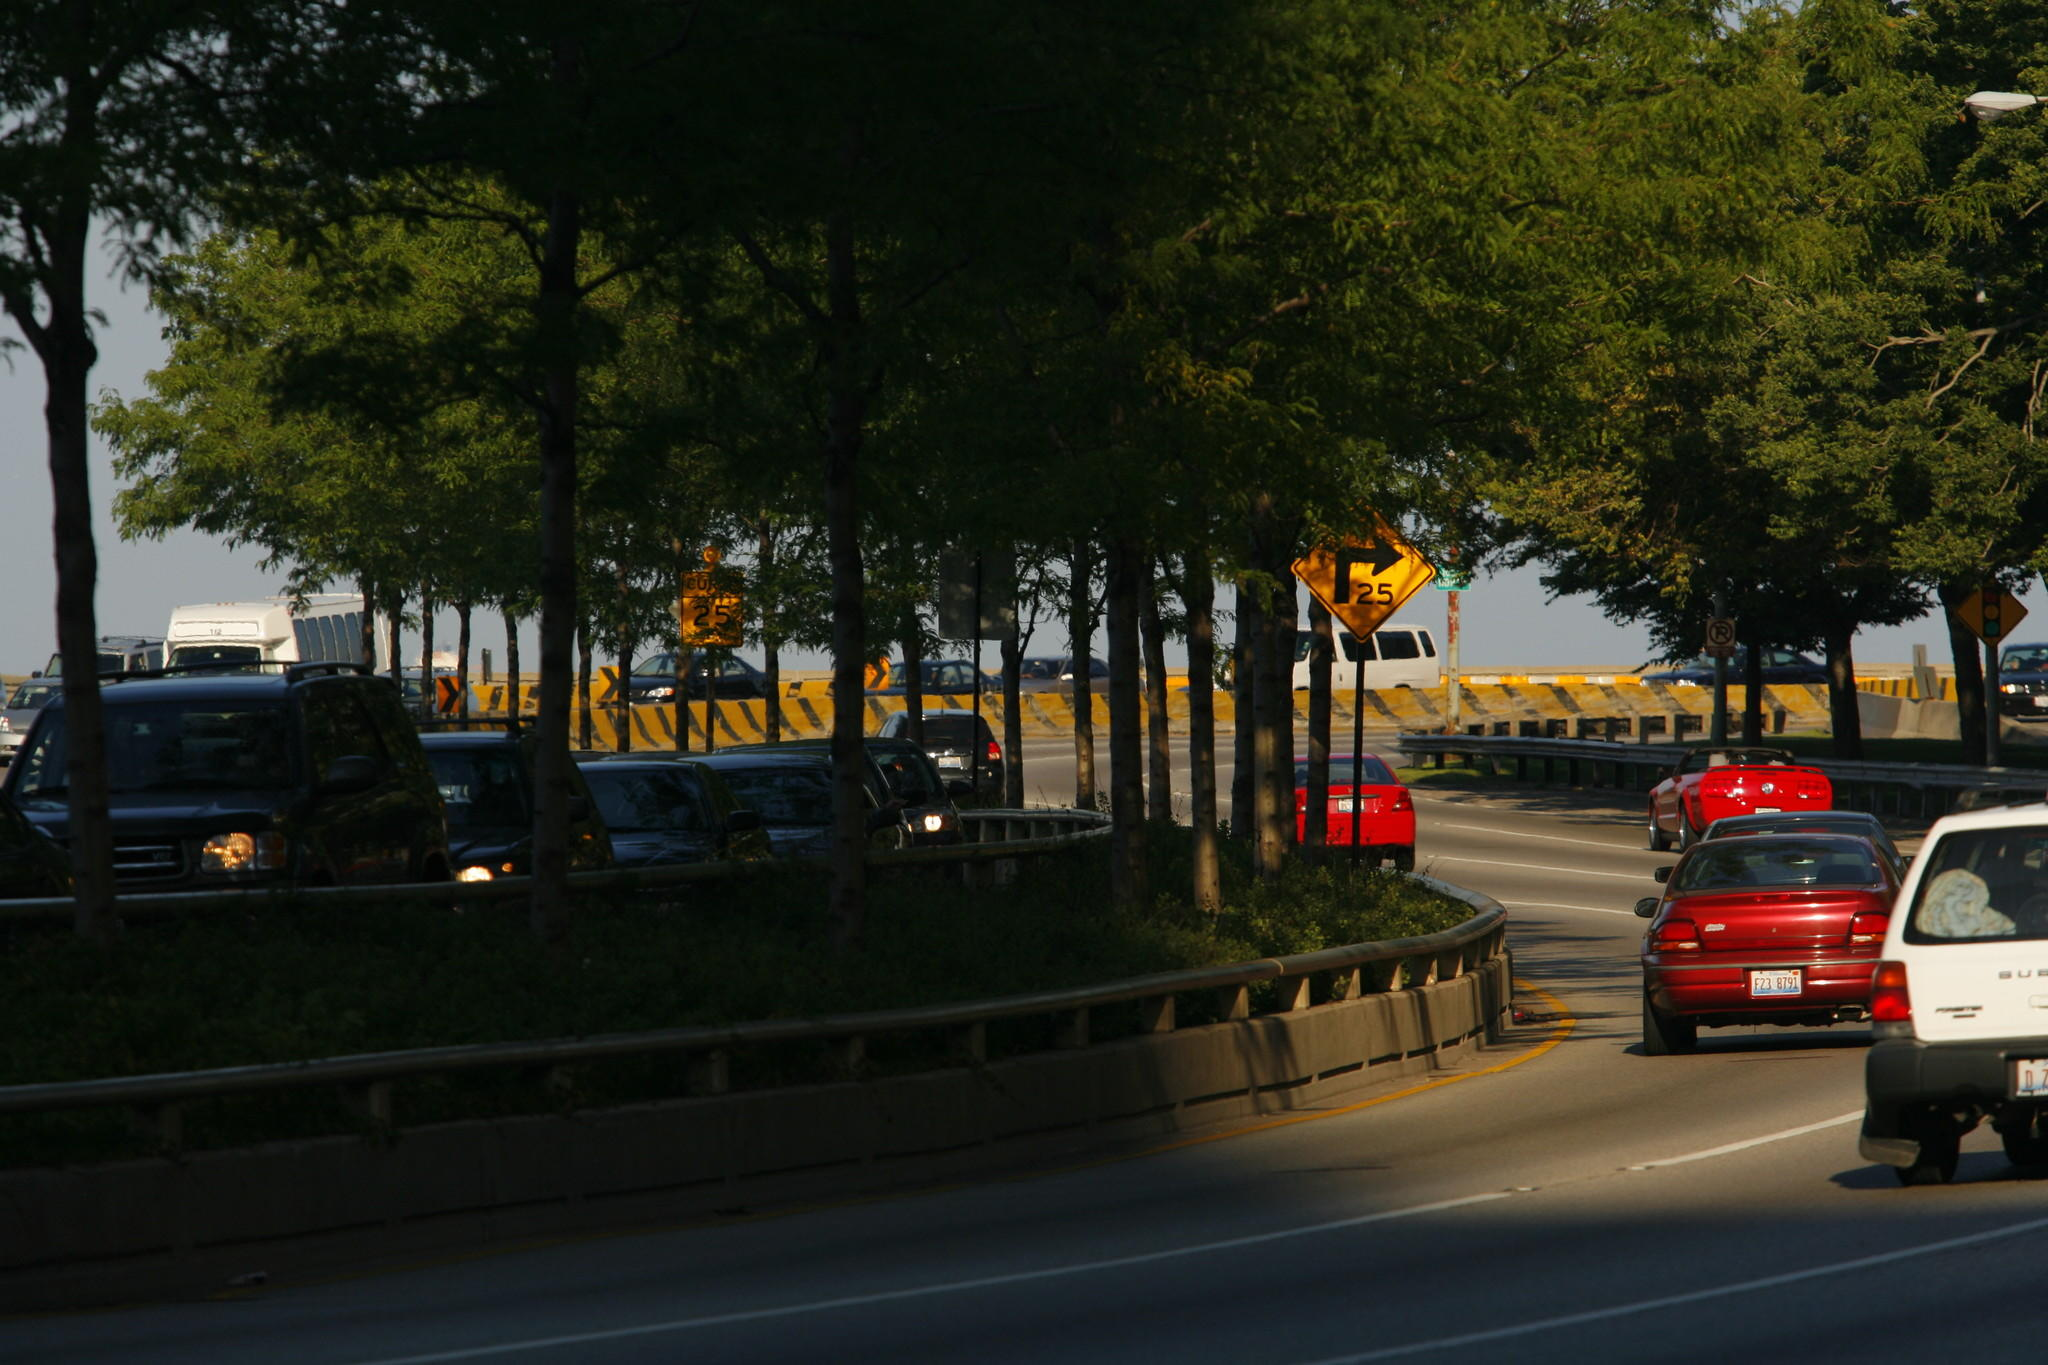 Oak Street curve on North Lake Shore Drive looking east. Chicago Tribune photo by E. Jason Wambsgans